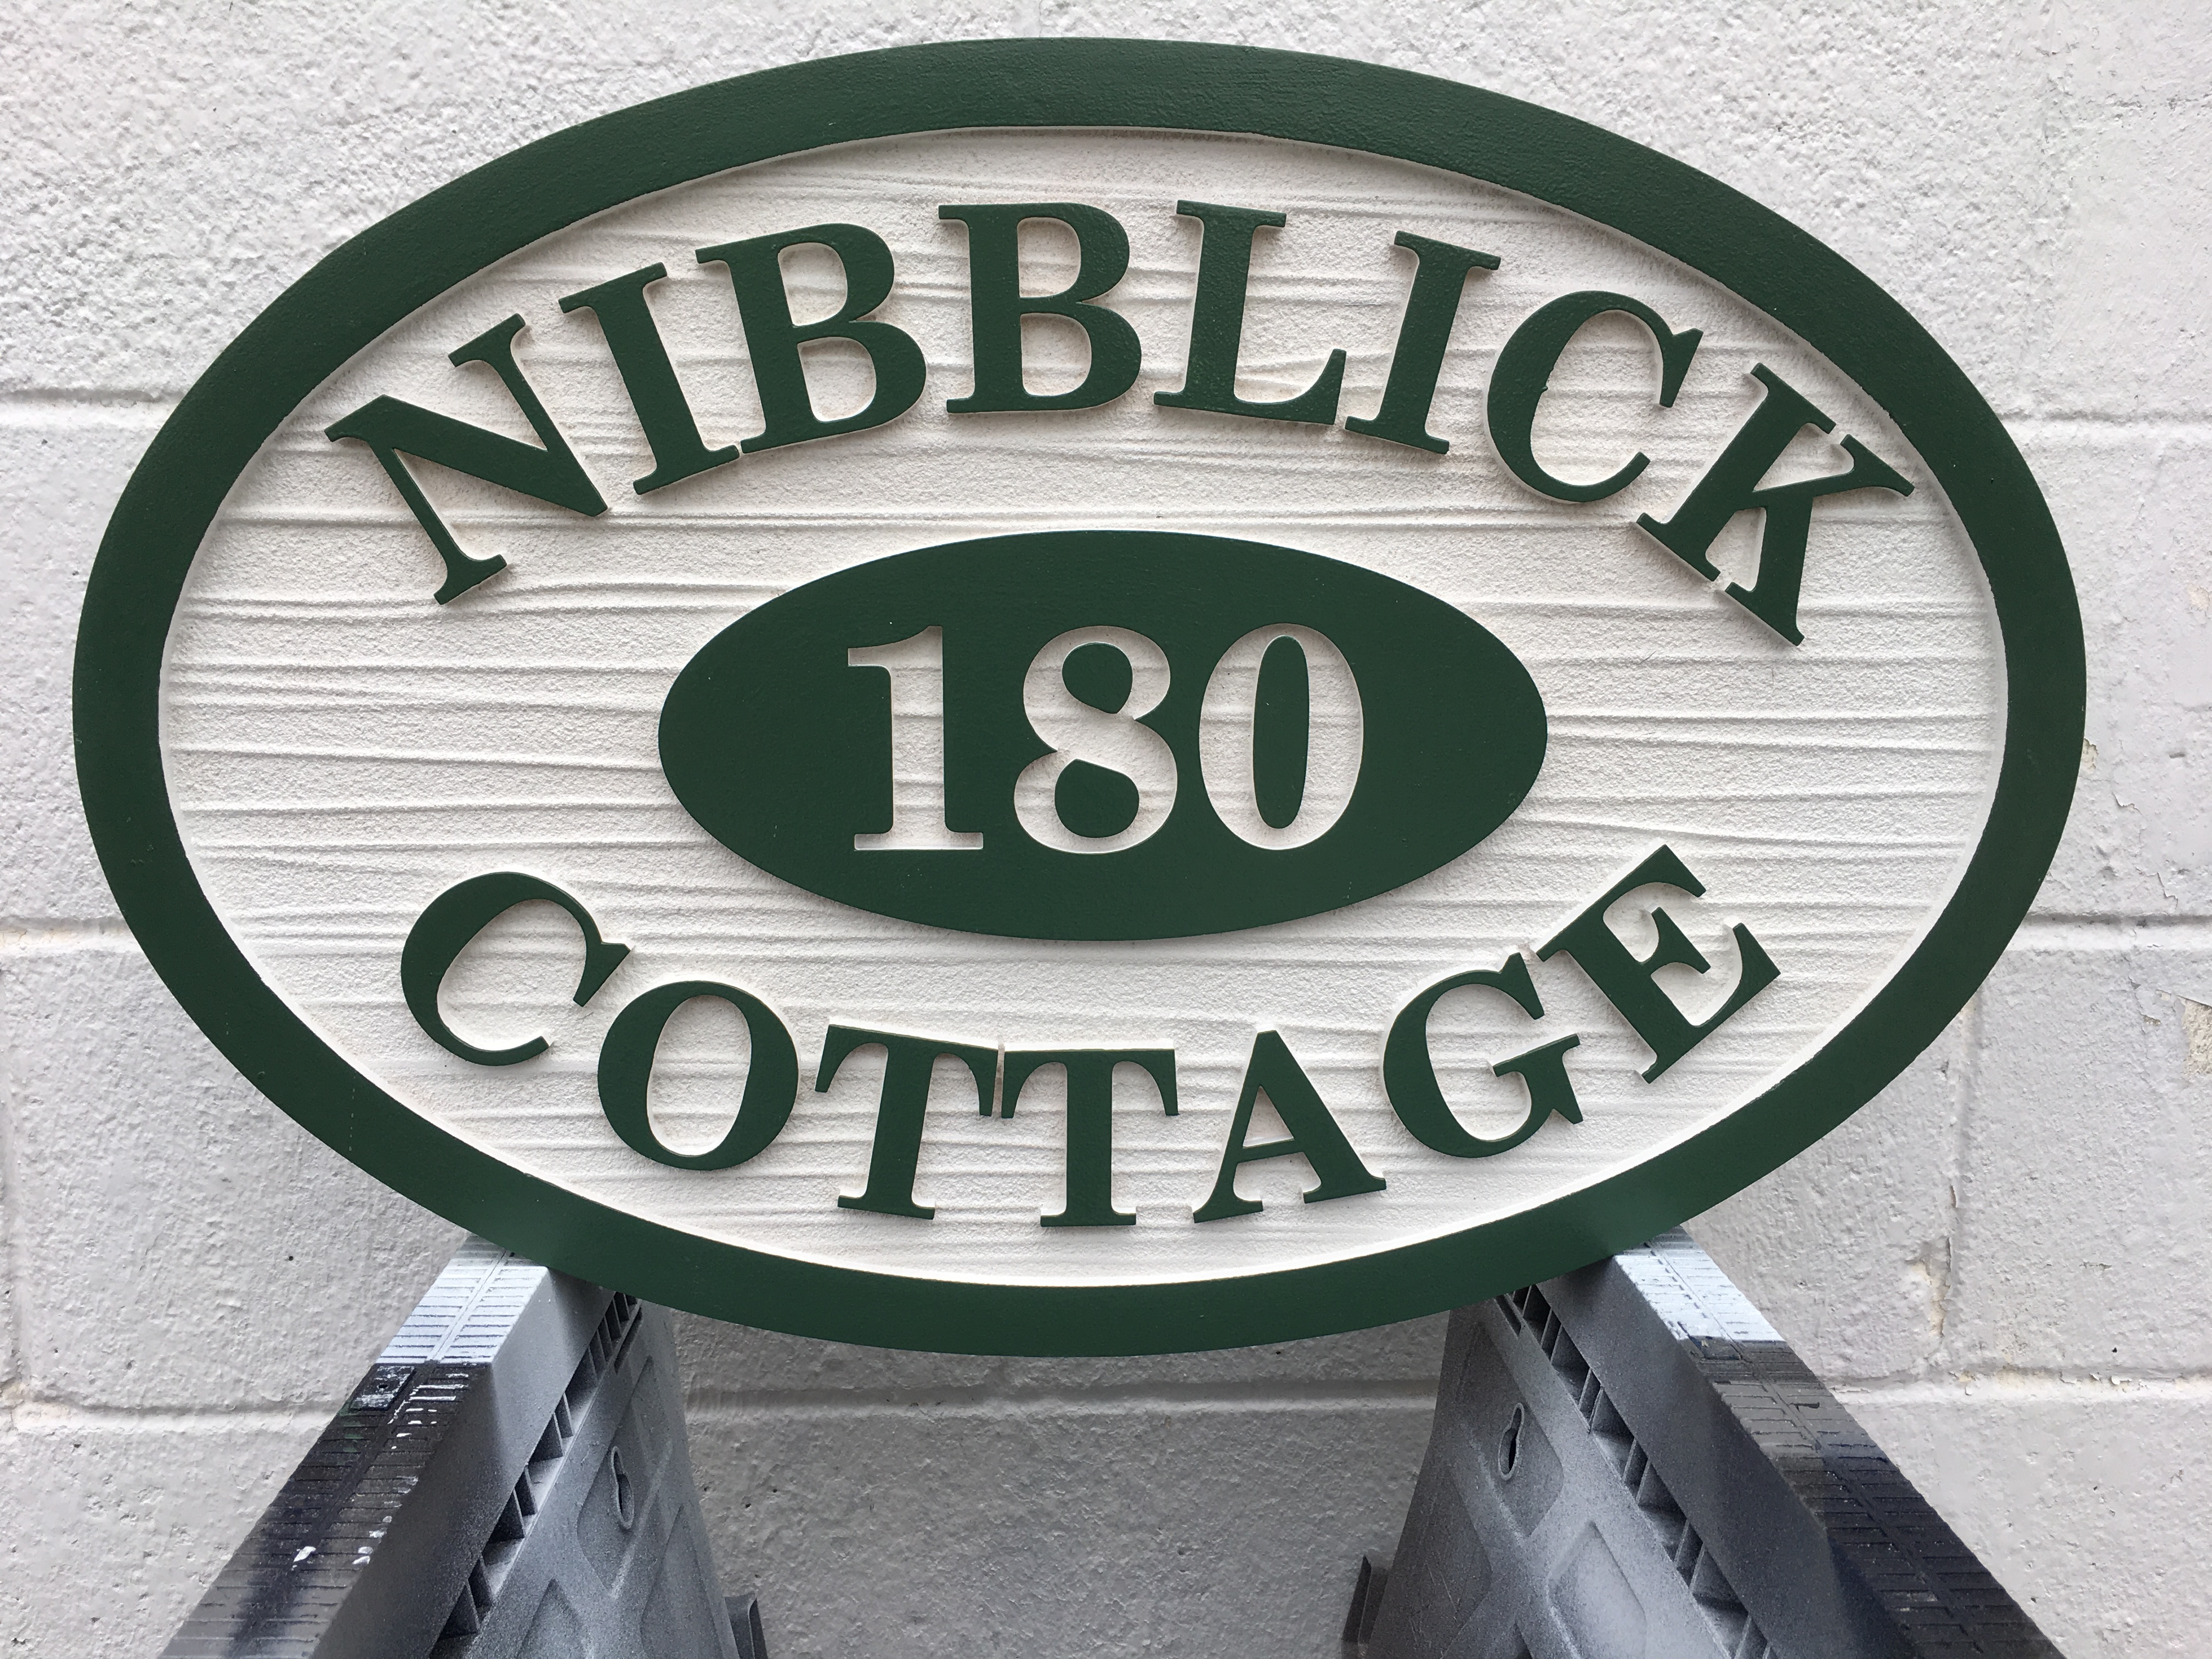 Nibblick Cottage